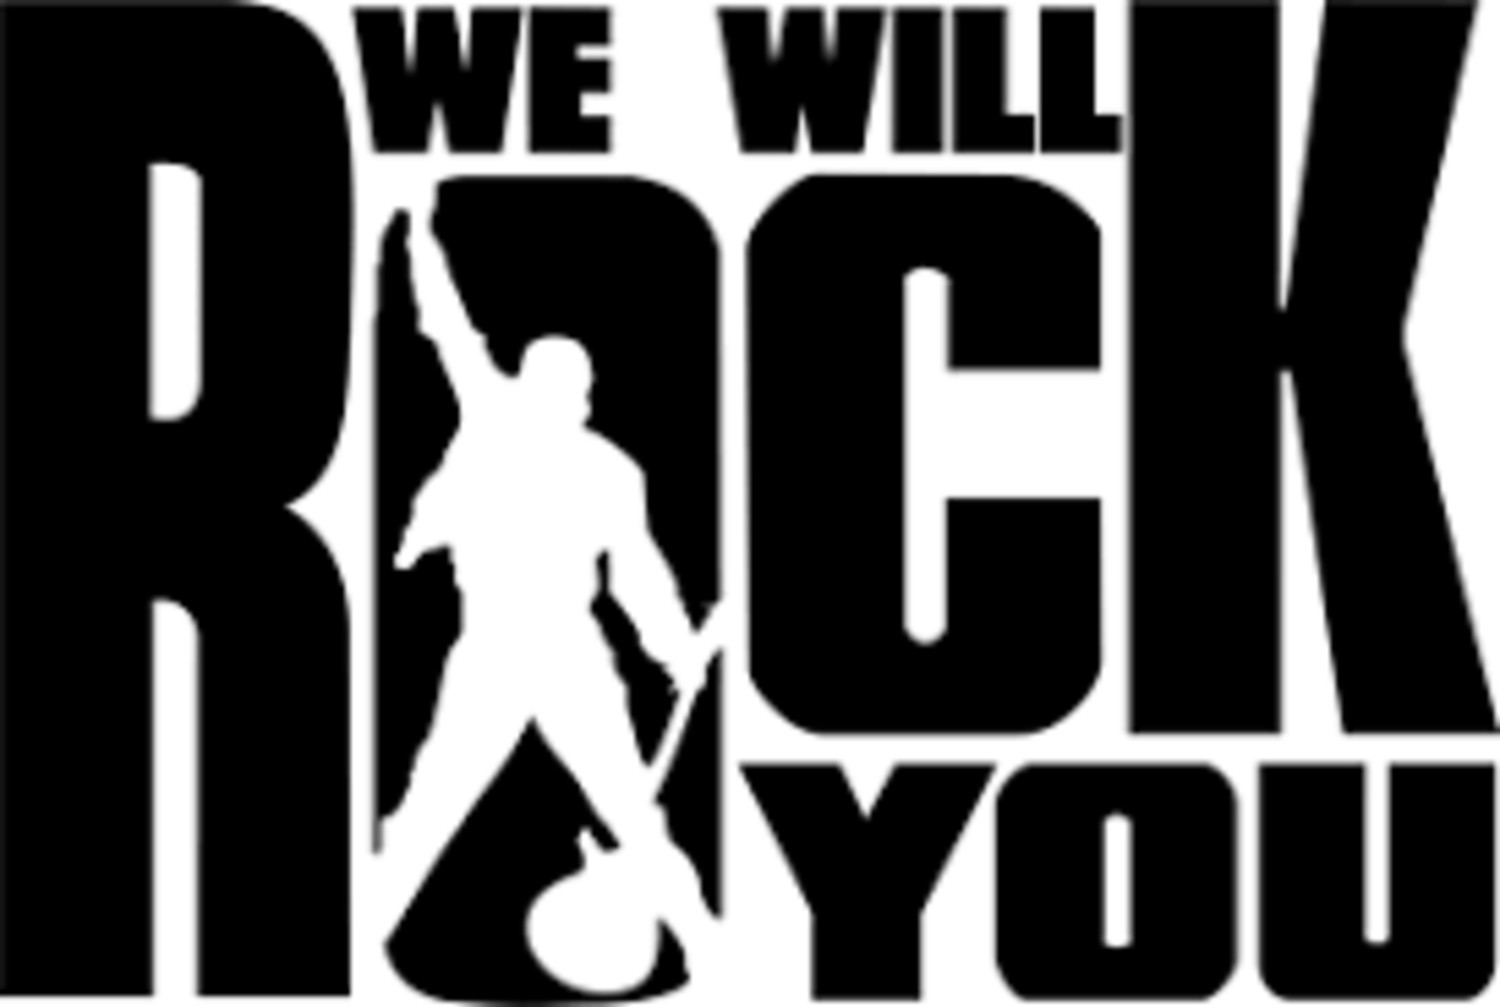 We Will Rock You Musical Tour Dates